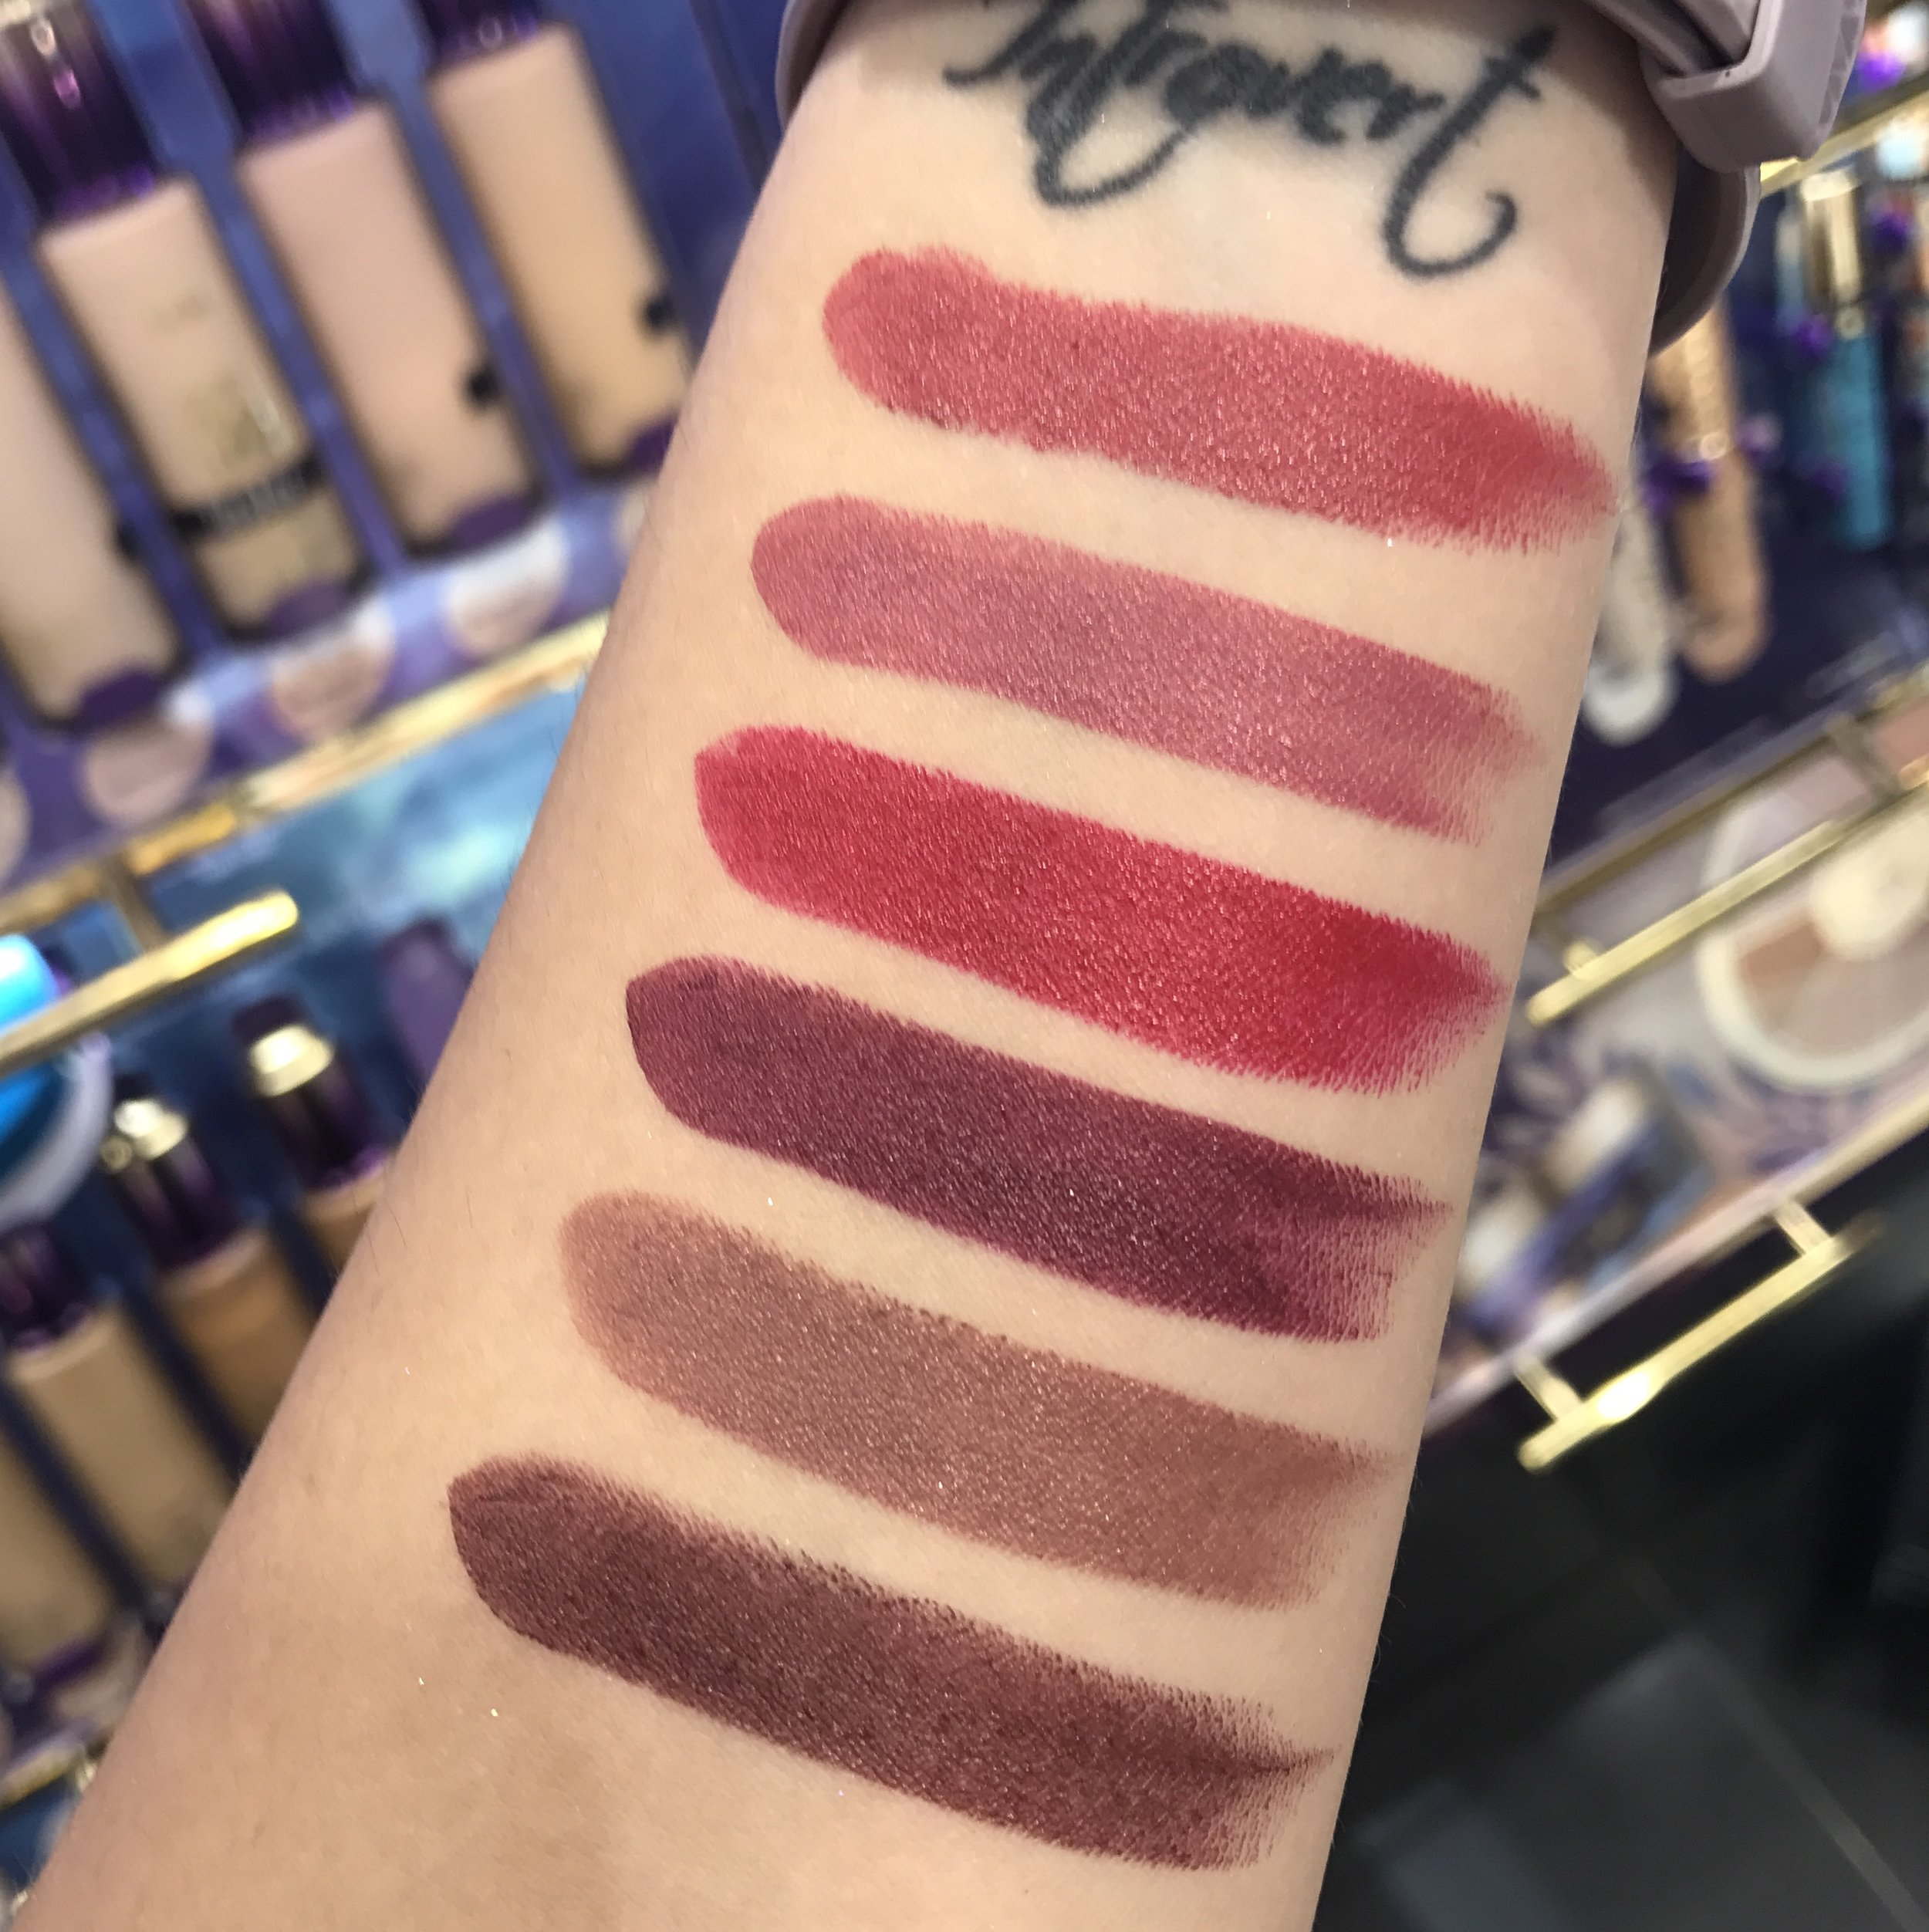 Swatches of the Tarte Color Splash Lipsticks